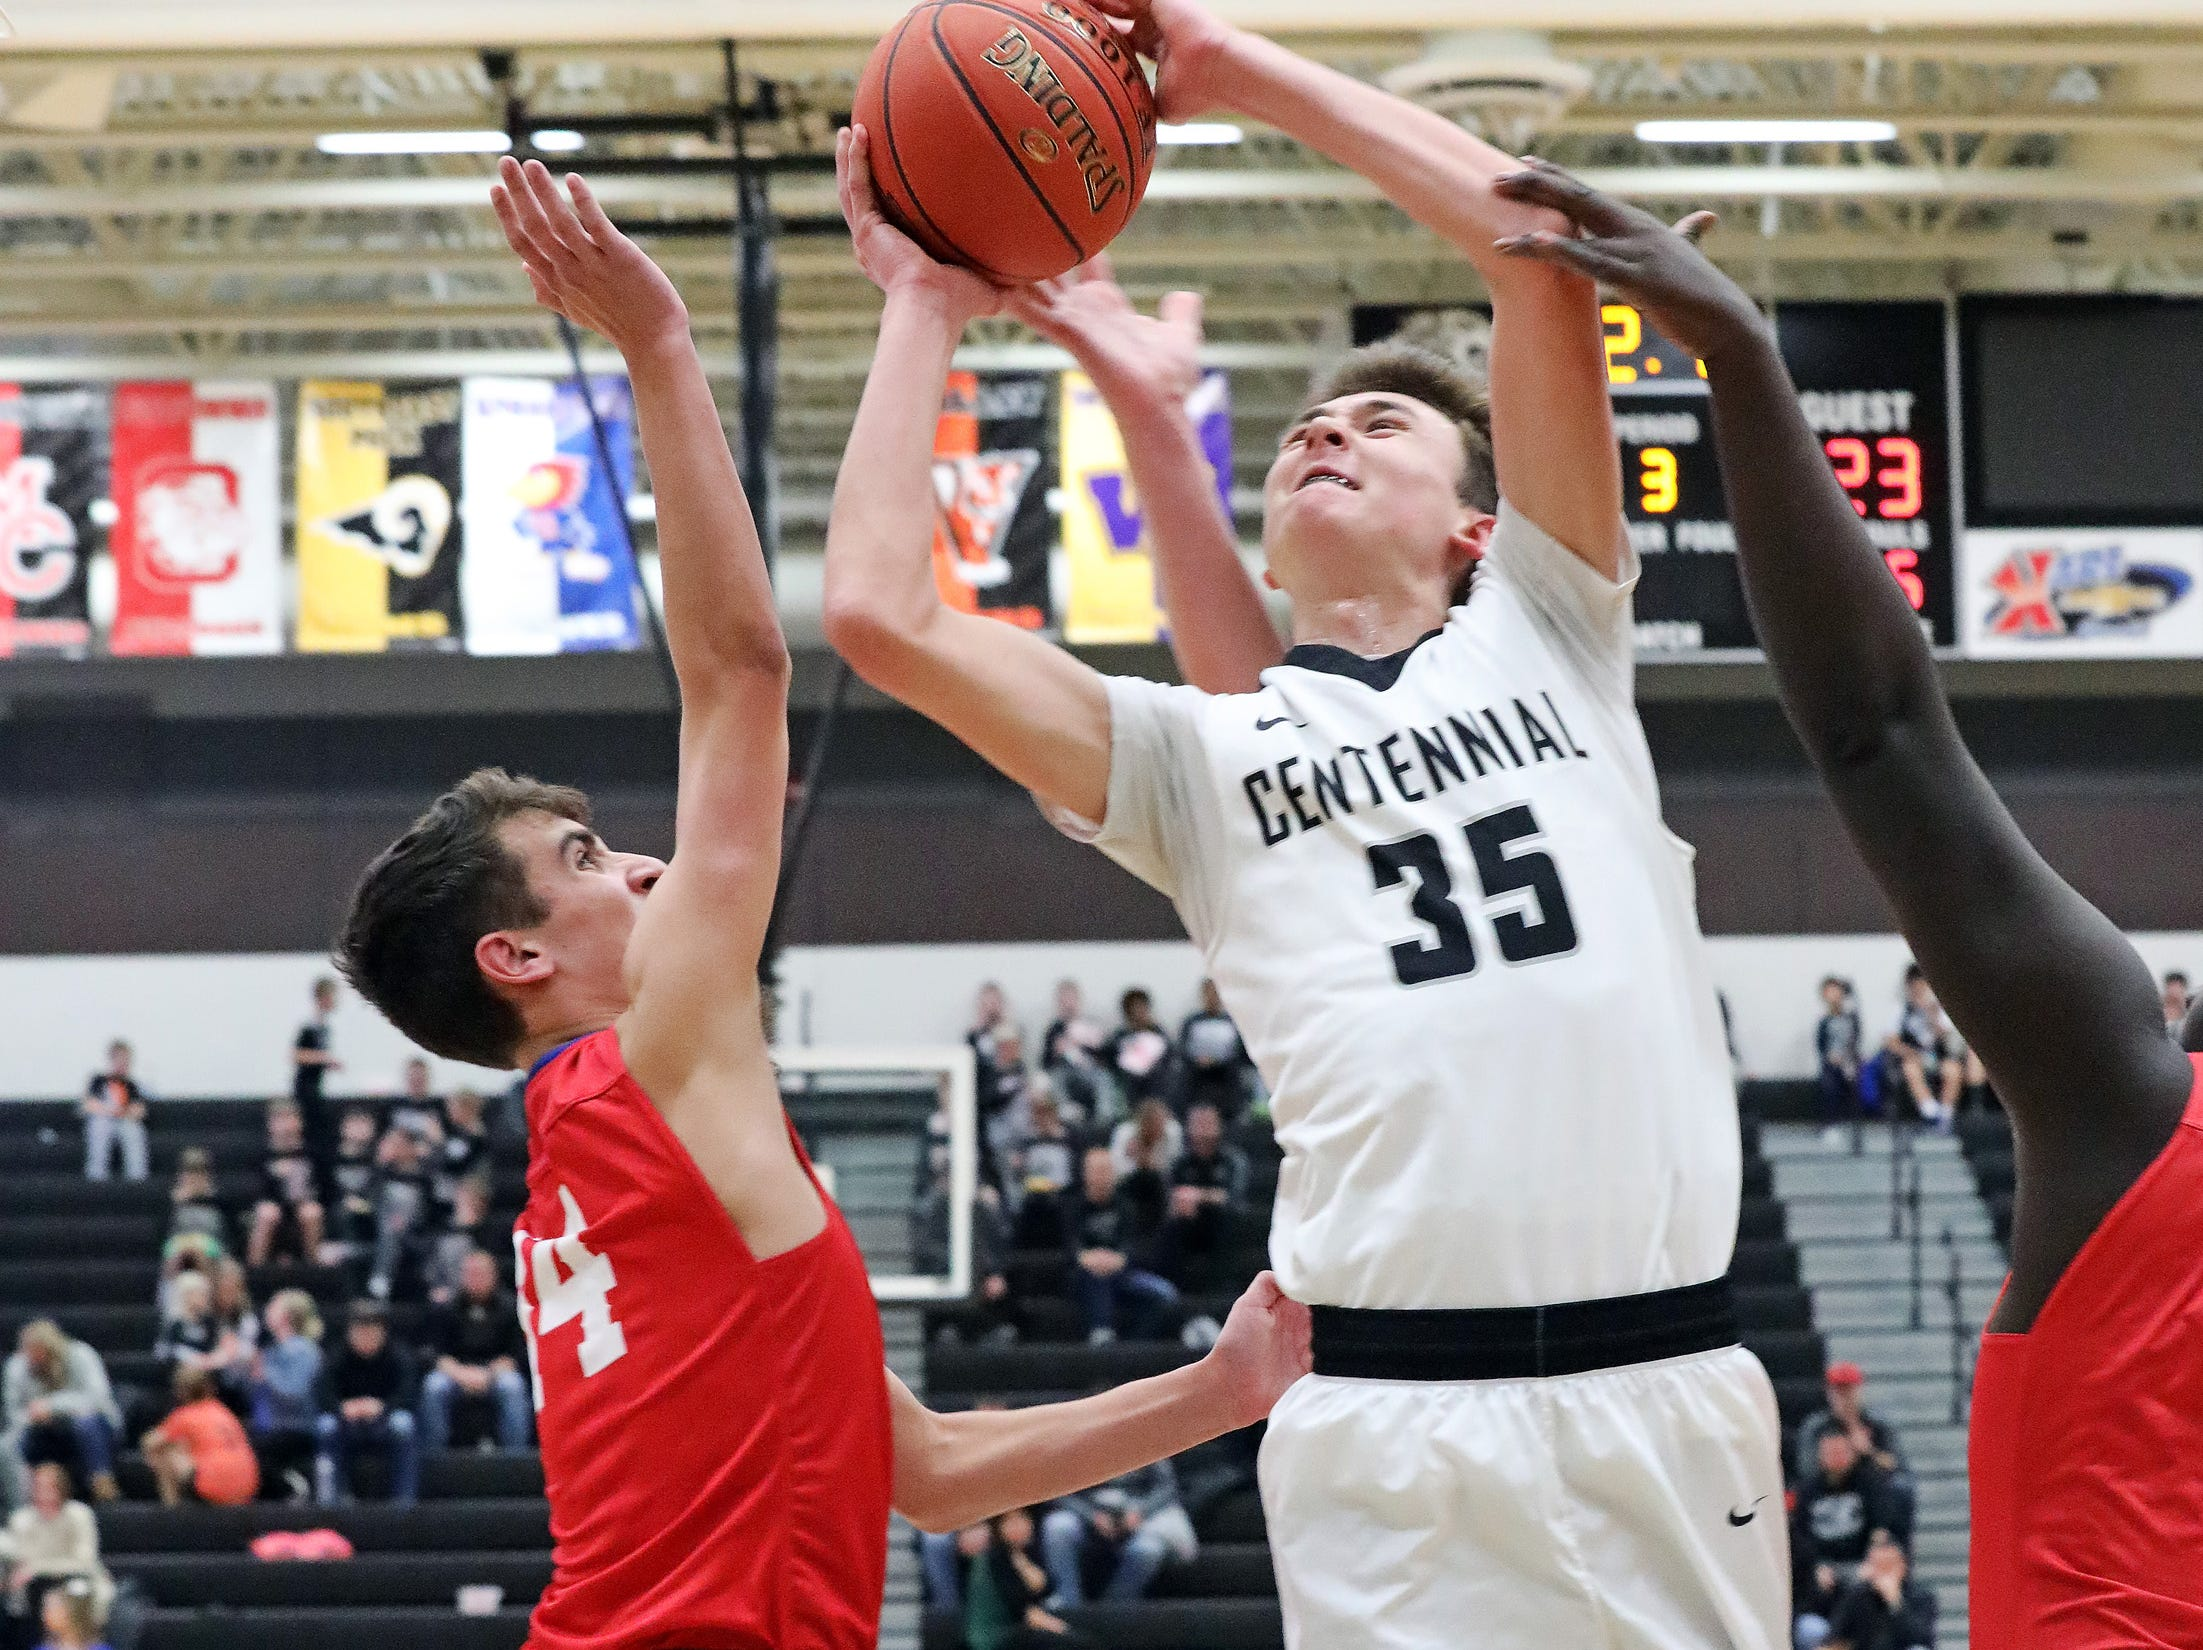 Ankeny Centennial junior Cody McCullough is fouled while shooting as the Marshalltown Bobcats compete against the Ankeny Centennial Jaguars in high school boys basketball on Tuesday, Jan. 8, 2019 at Ankeny Centennial High.